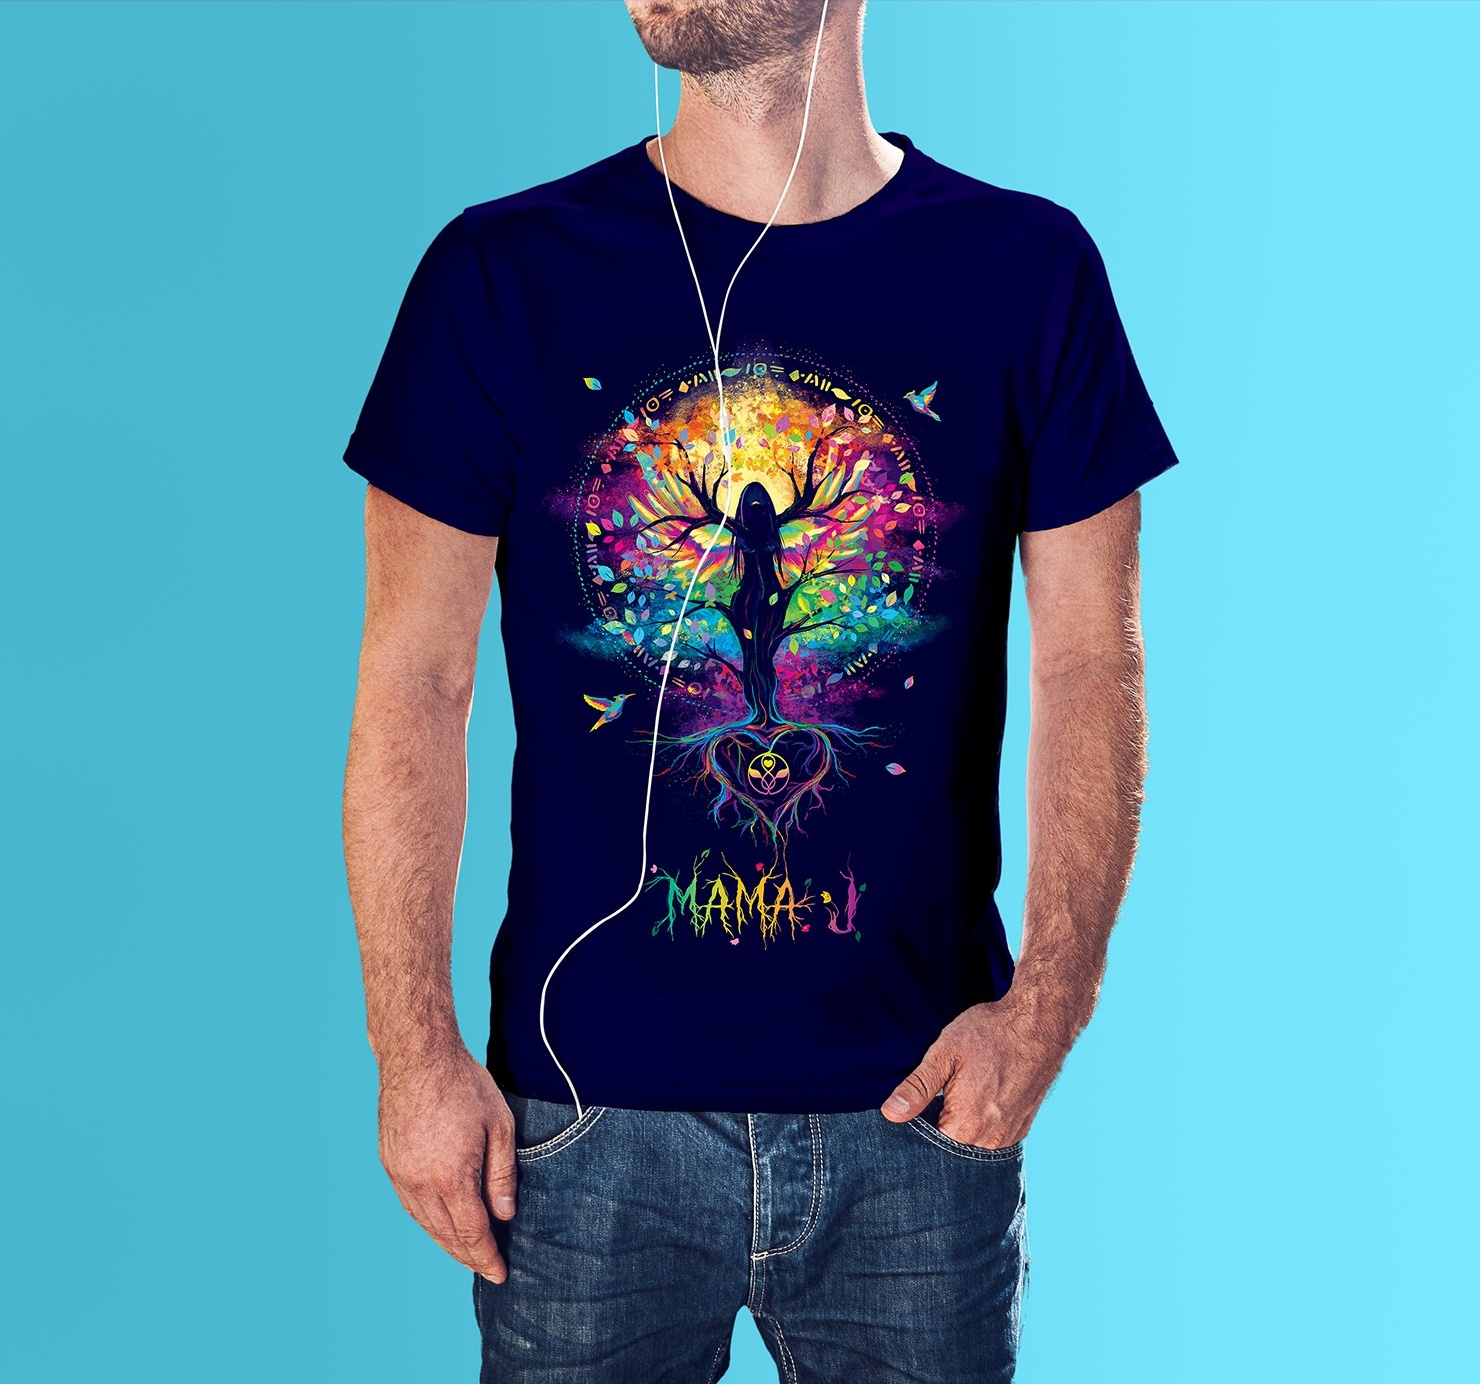 Shirt Creator The 10 Best Freelance T Shirt Designers For Hire In 2019 99designs